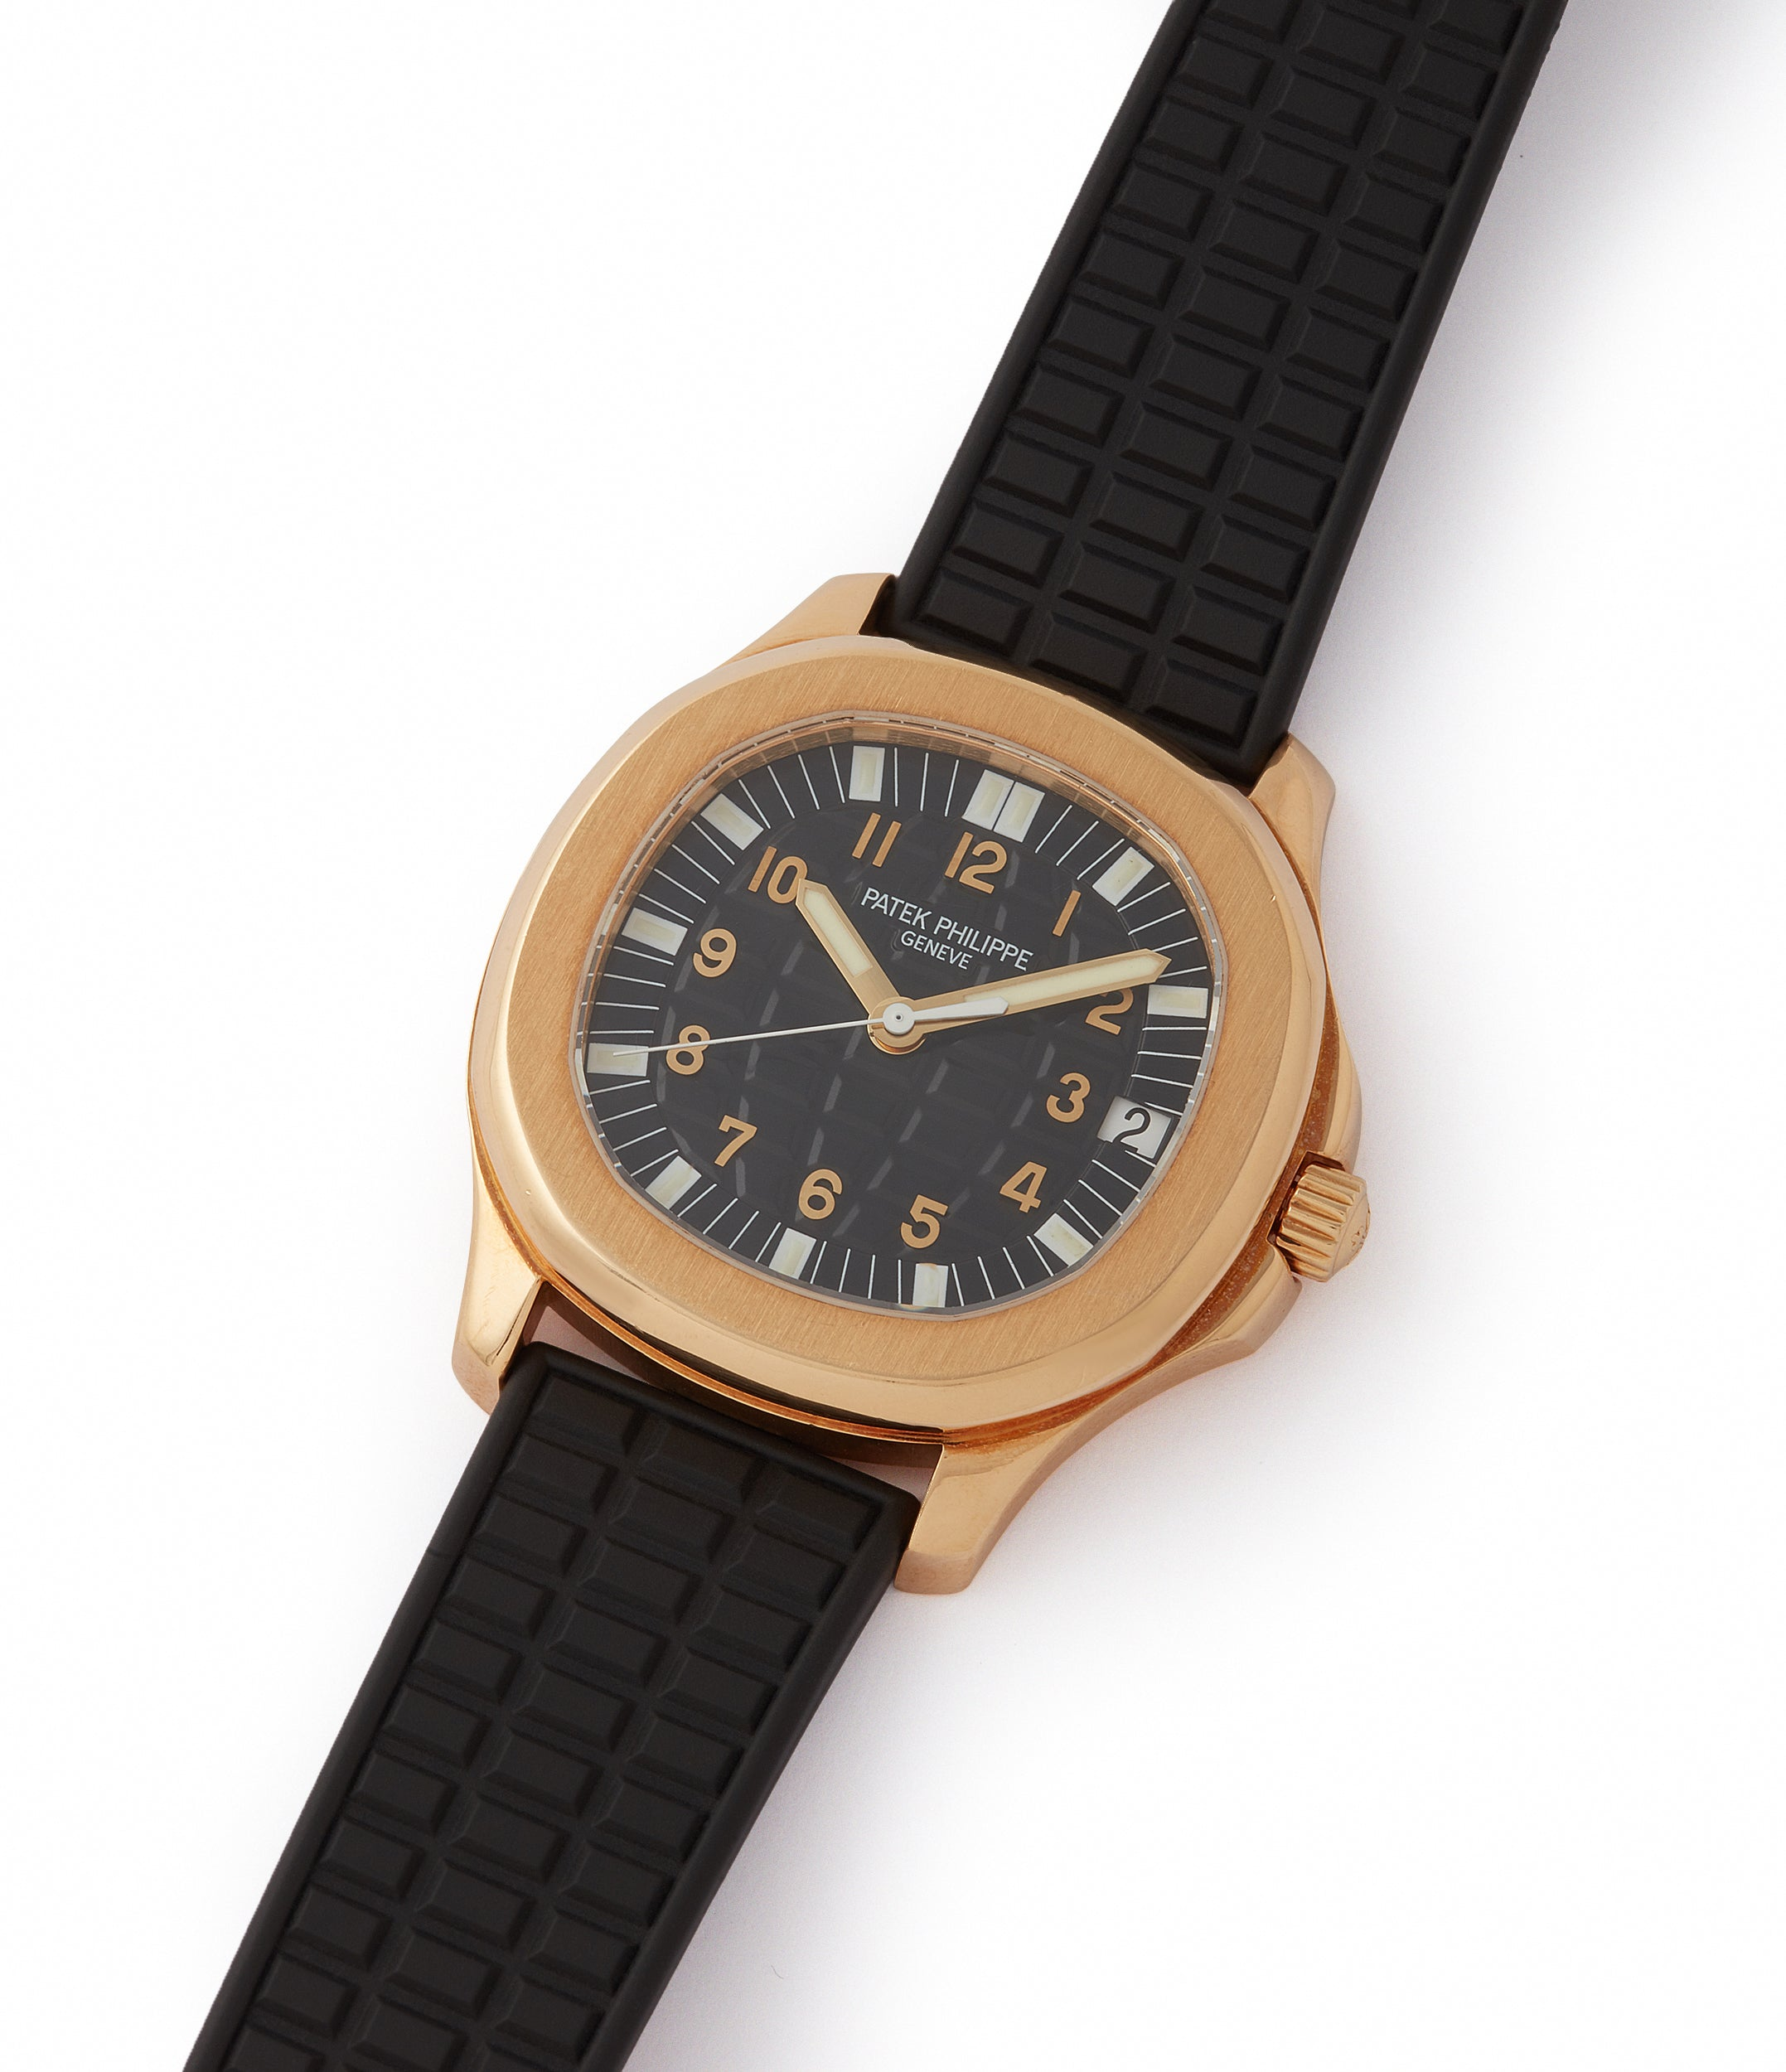 Aquanaut Patek Philippe 5065J yellow gold luxury sport watch for sale online at A Collected Man London UK specialist of rare watches